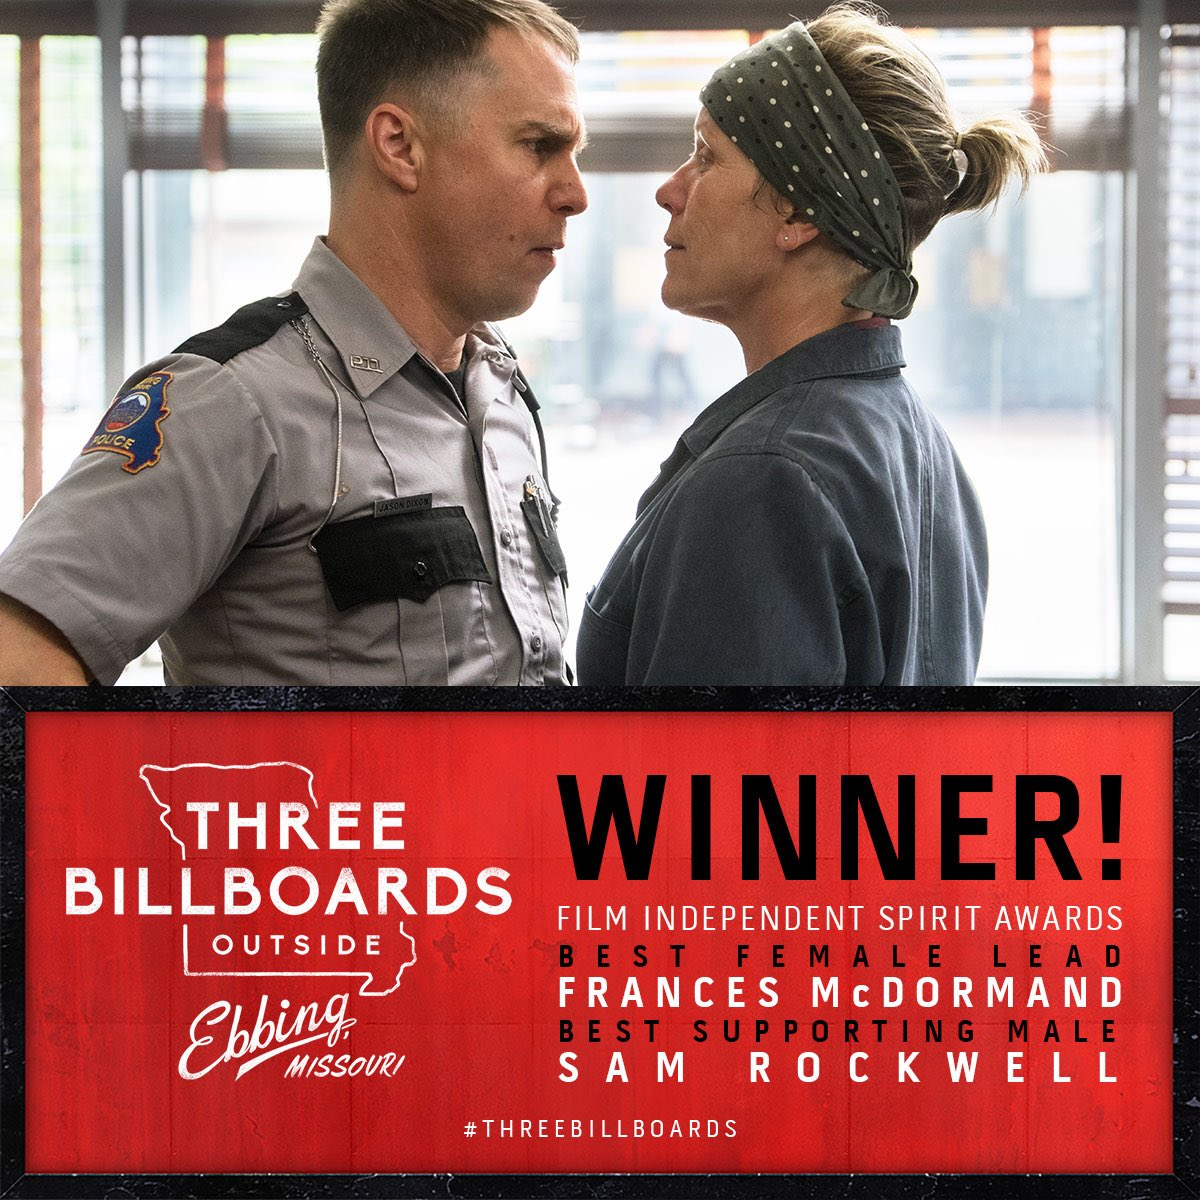 Blueprint pictures blueprintpics twitter congratulations to threebillboards on its 2 wins at the filmindependent spiritawards including best female lead frances mcdormand and best male lead sam malvernweather